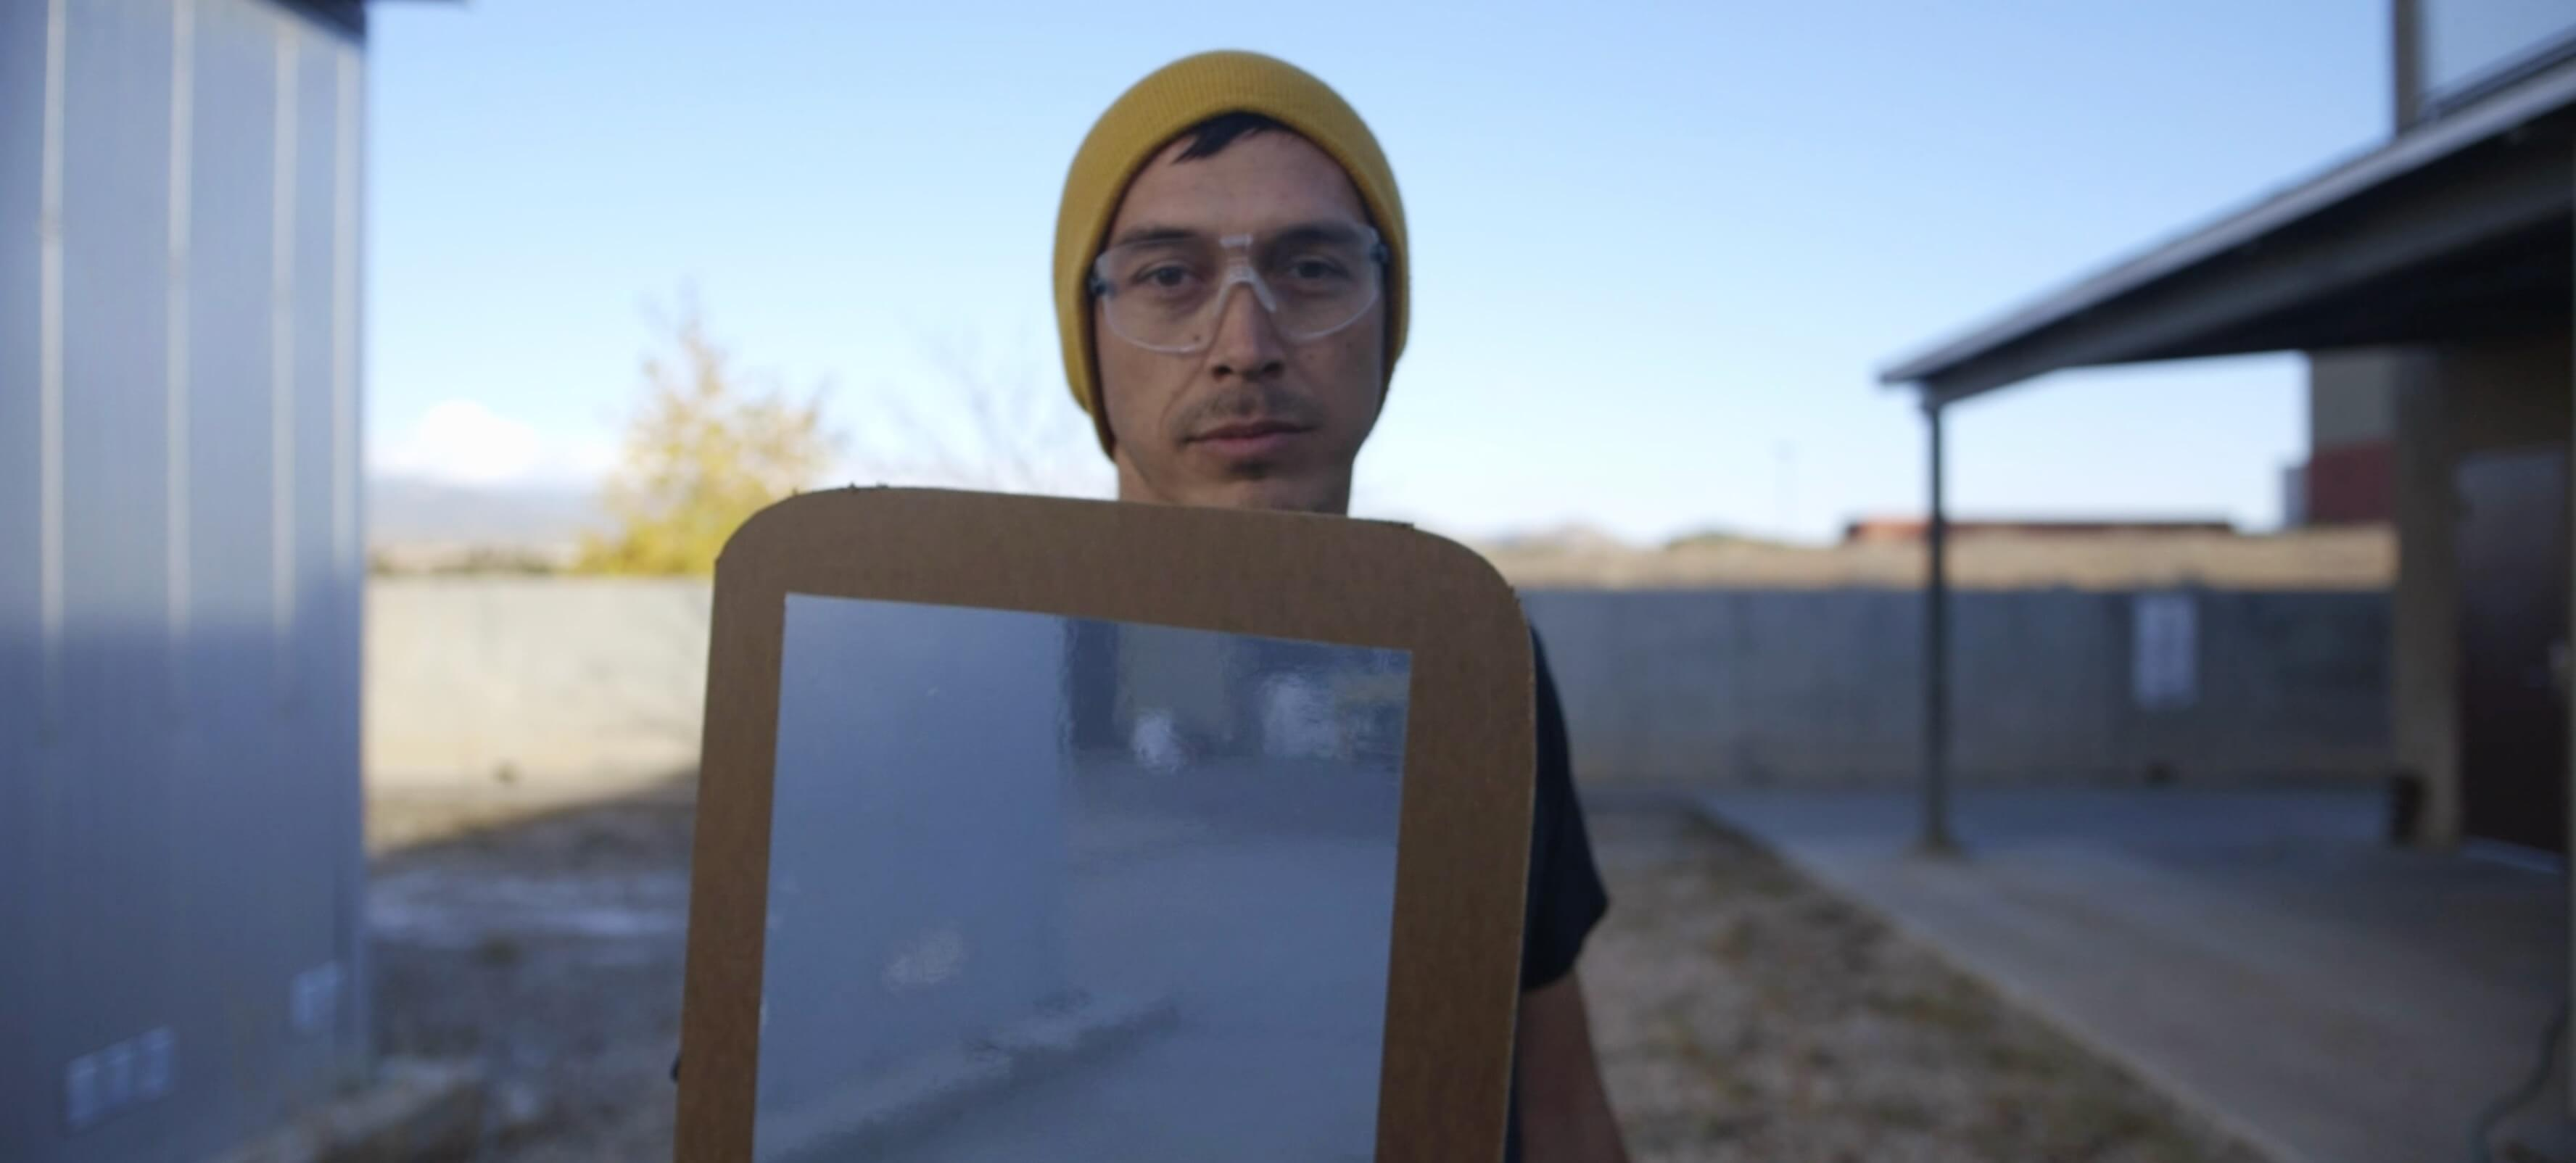 _How To Build Mirror Shields For Water Protectors_. Cannupa Hanska Luger, 2016. Video Image Still. Camera/Edit Razelle Benally.